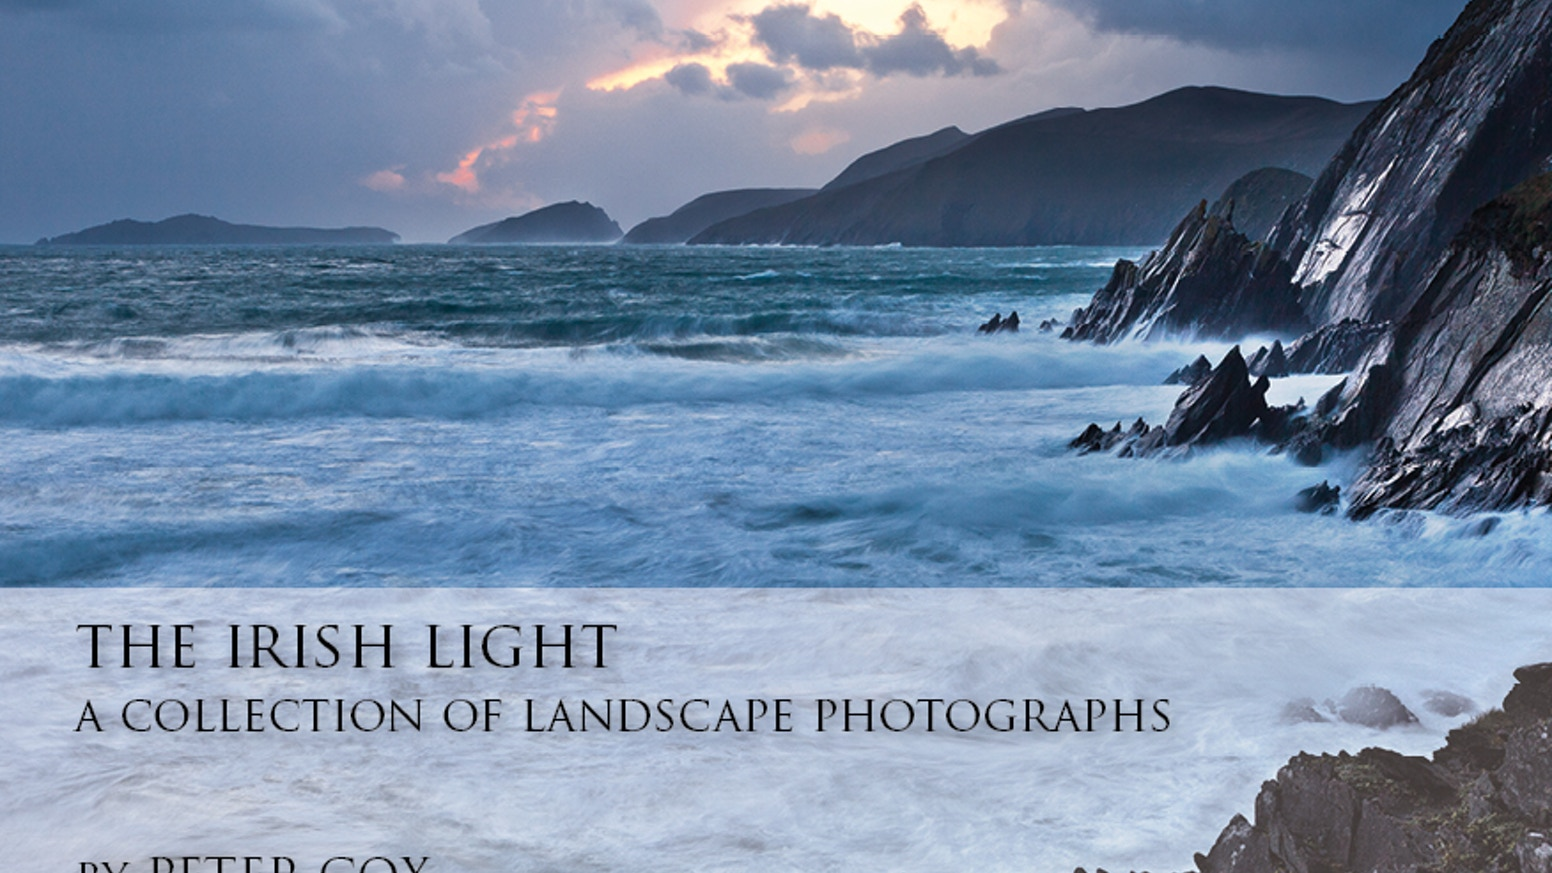 A collection of more than 80 stunning photographs of the Irish landscape, beautifully presented in a 112 page, hardcover book.